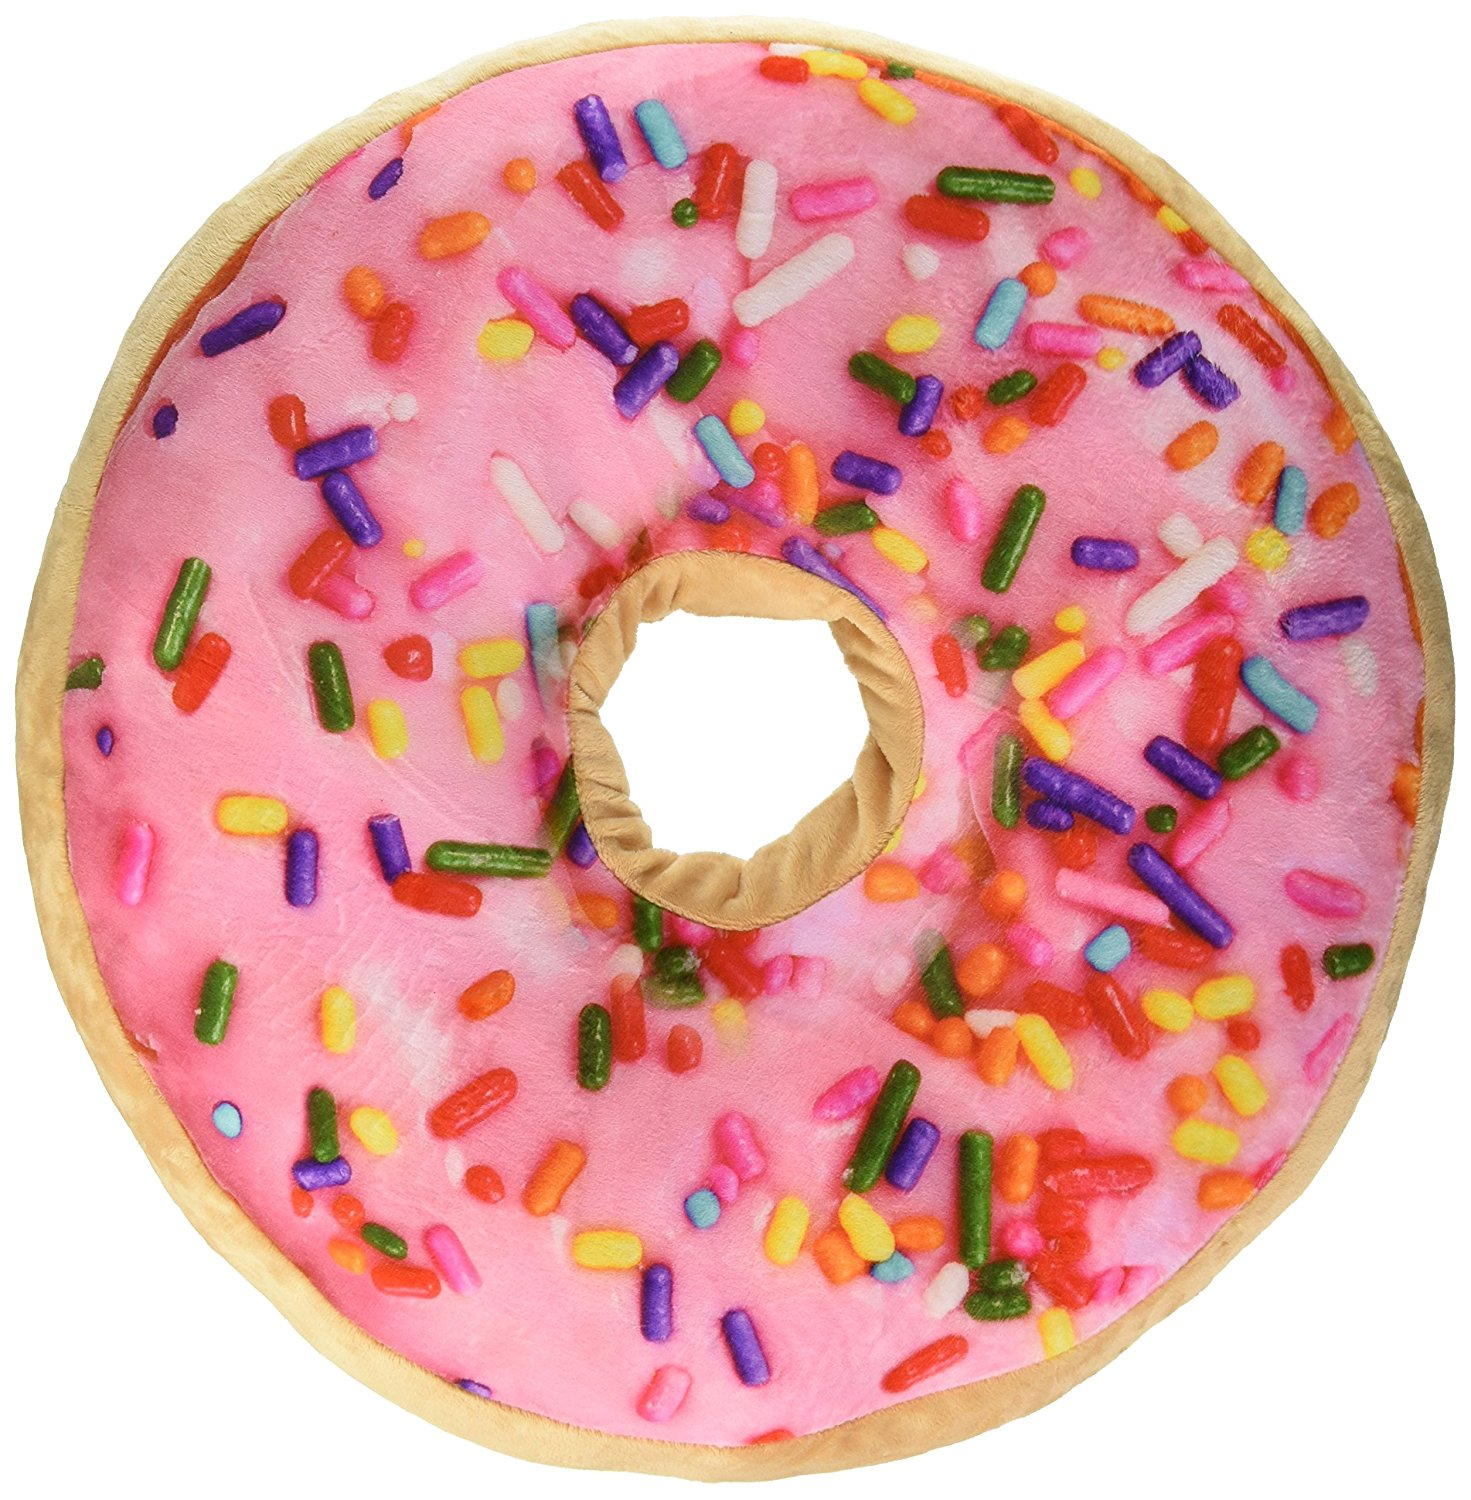 scented sprinkle donut 16 pillow strawberry